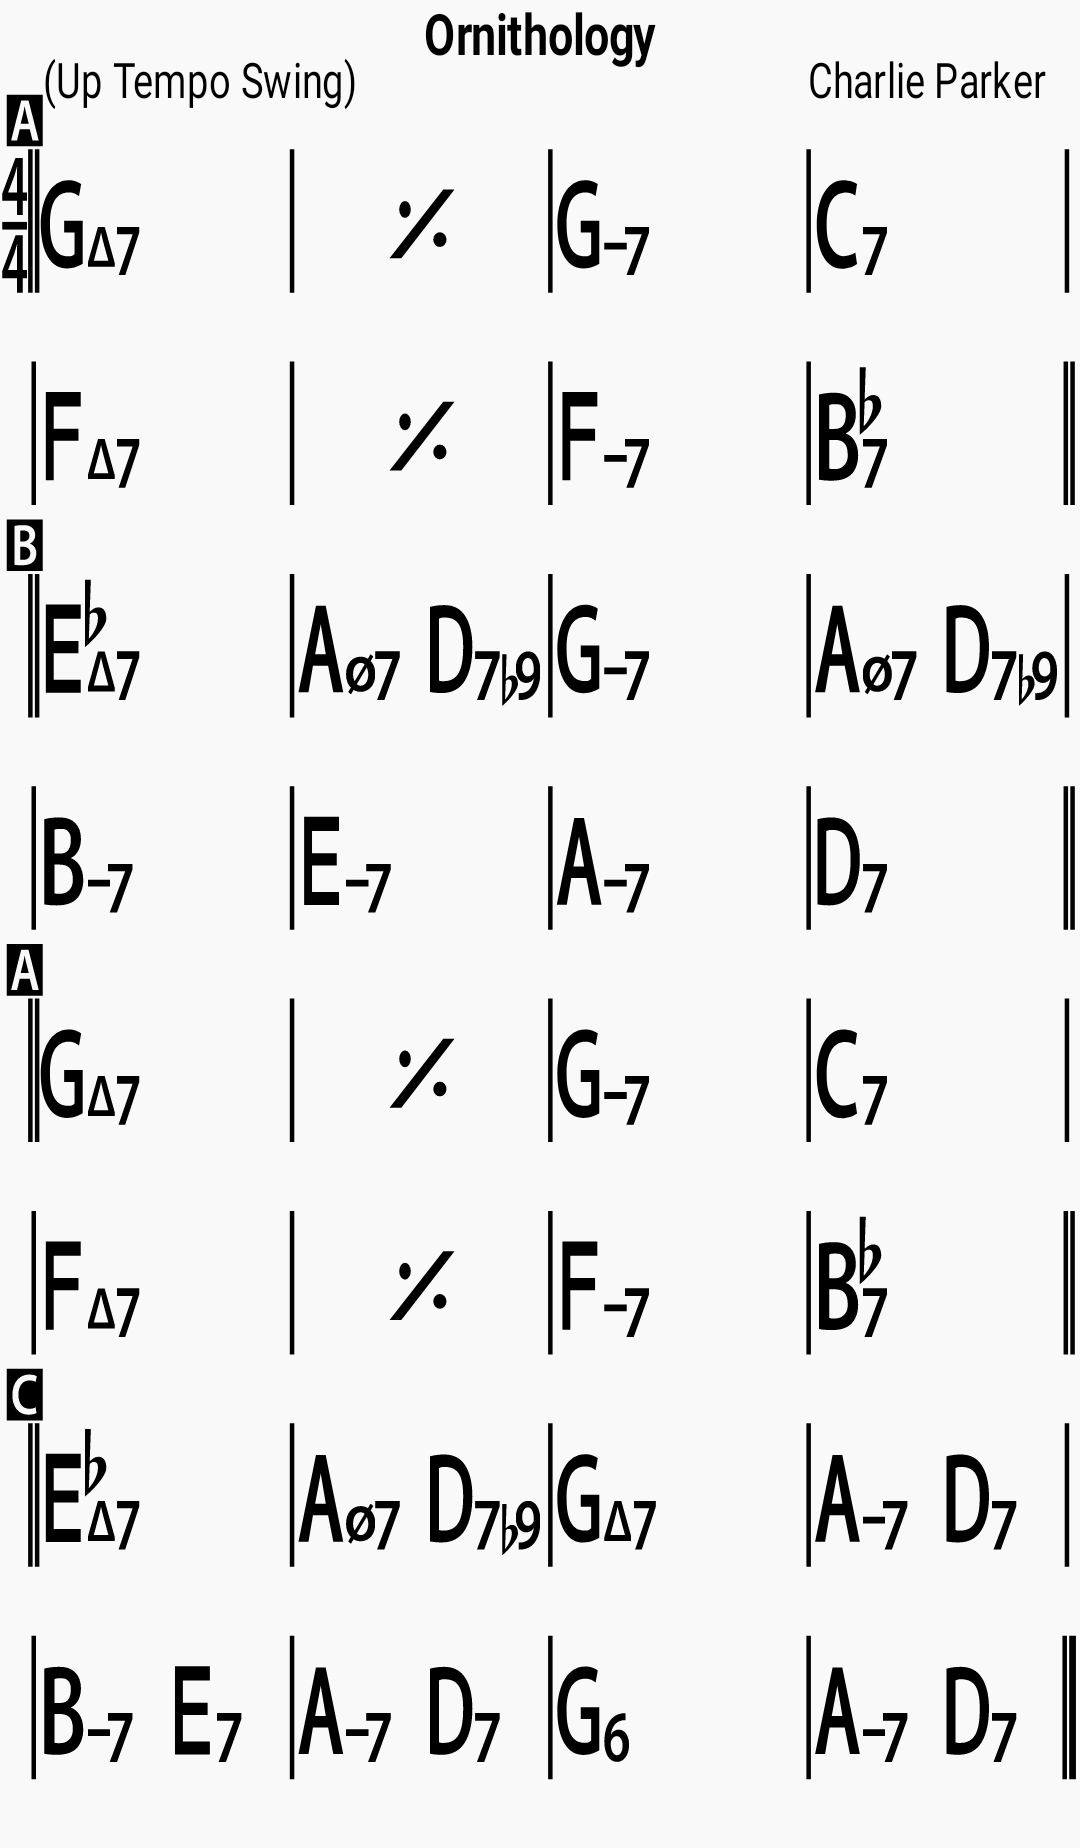 Chord chart for the jazz standard Ornithology